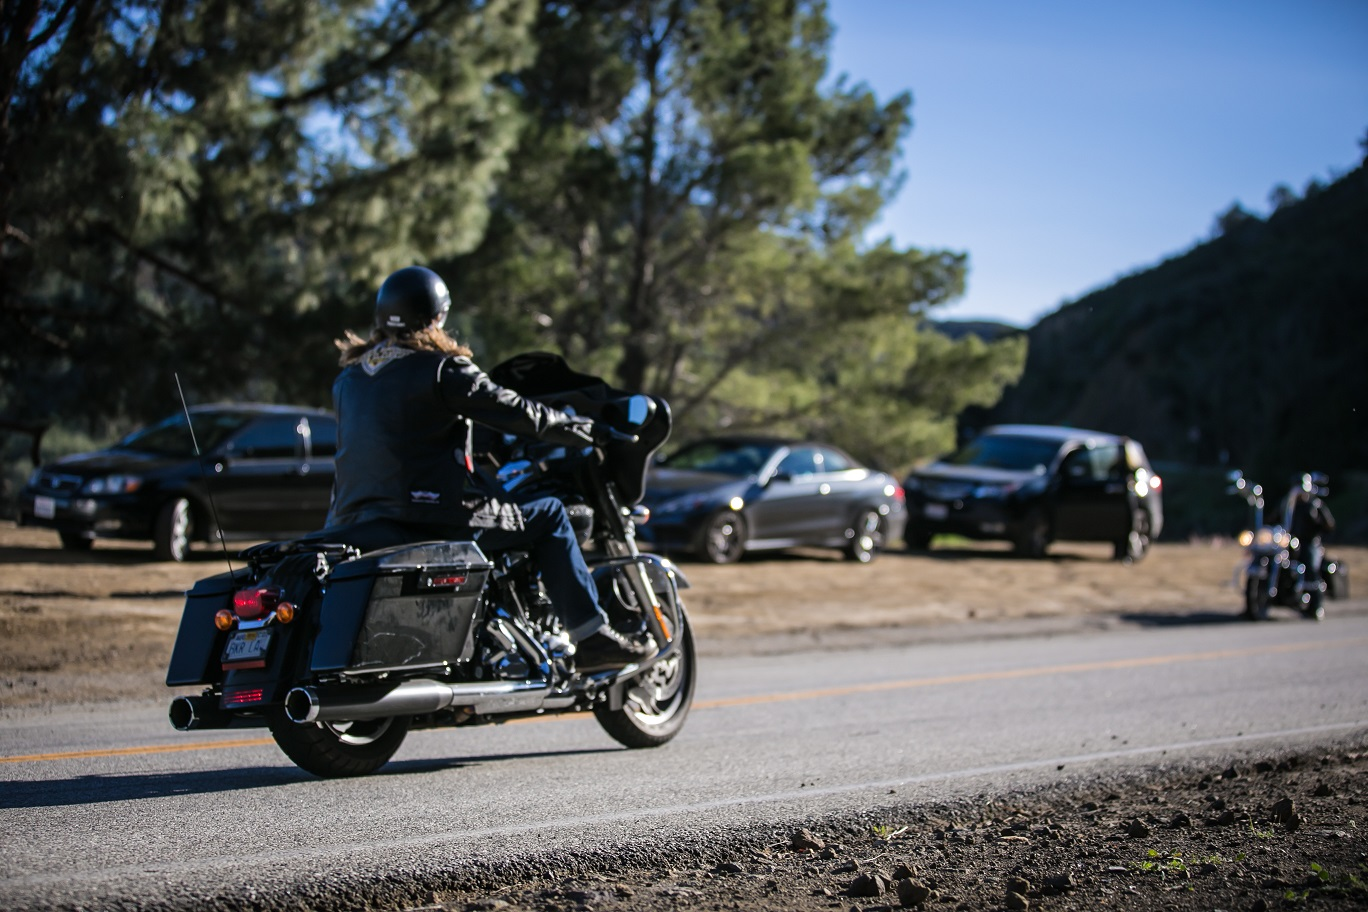 Independent Motorcyclists in Idaho Uniting to Fight Motorcycle Profiling